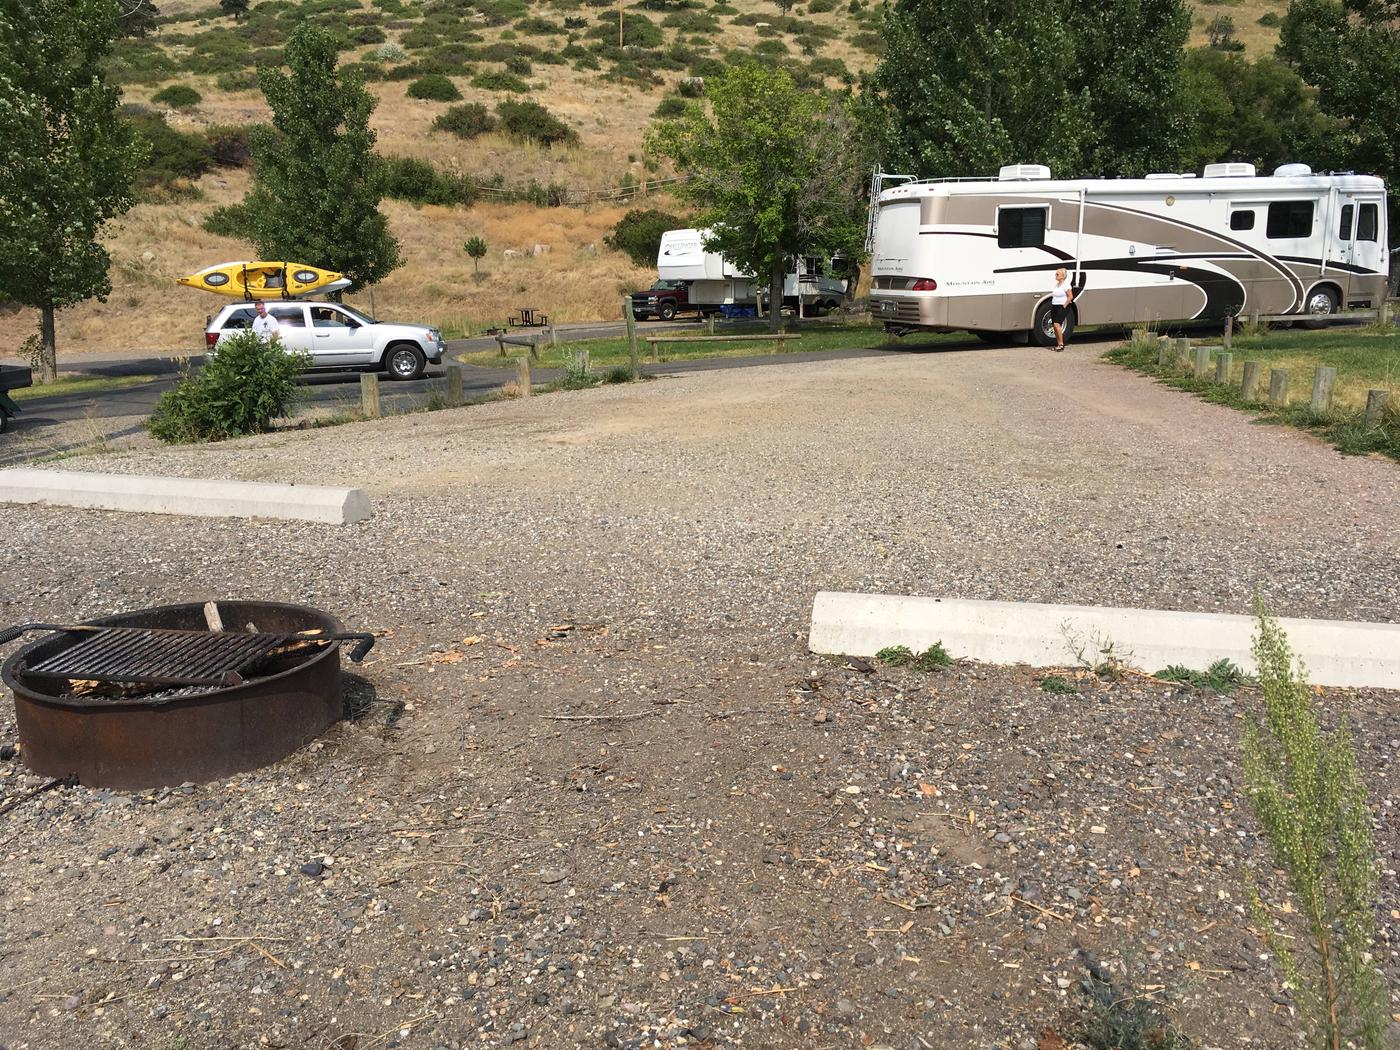 Site 8 BLM Holter Lake Campground. Interior view of campground from campsite. Graveled campsite with fire pit in the foreground.Site 8 BLM Holter Lake Campground.